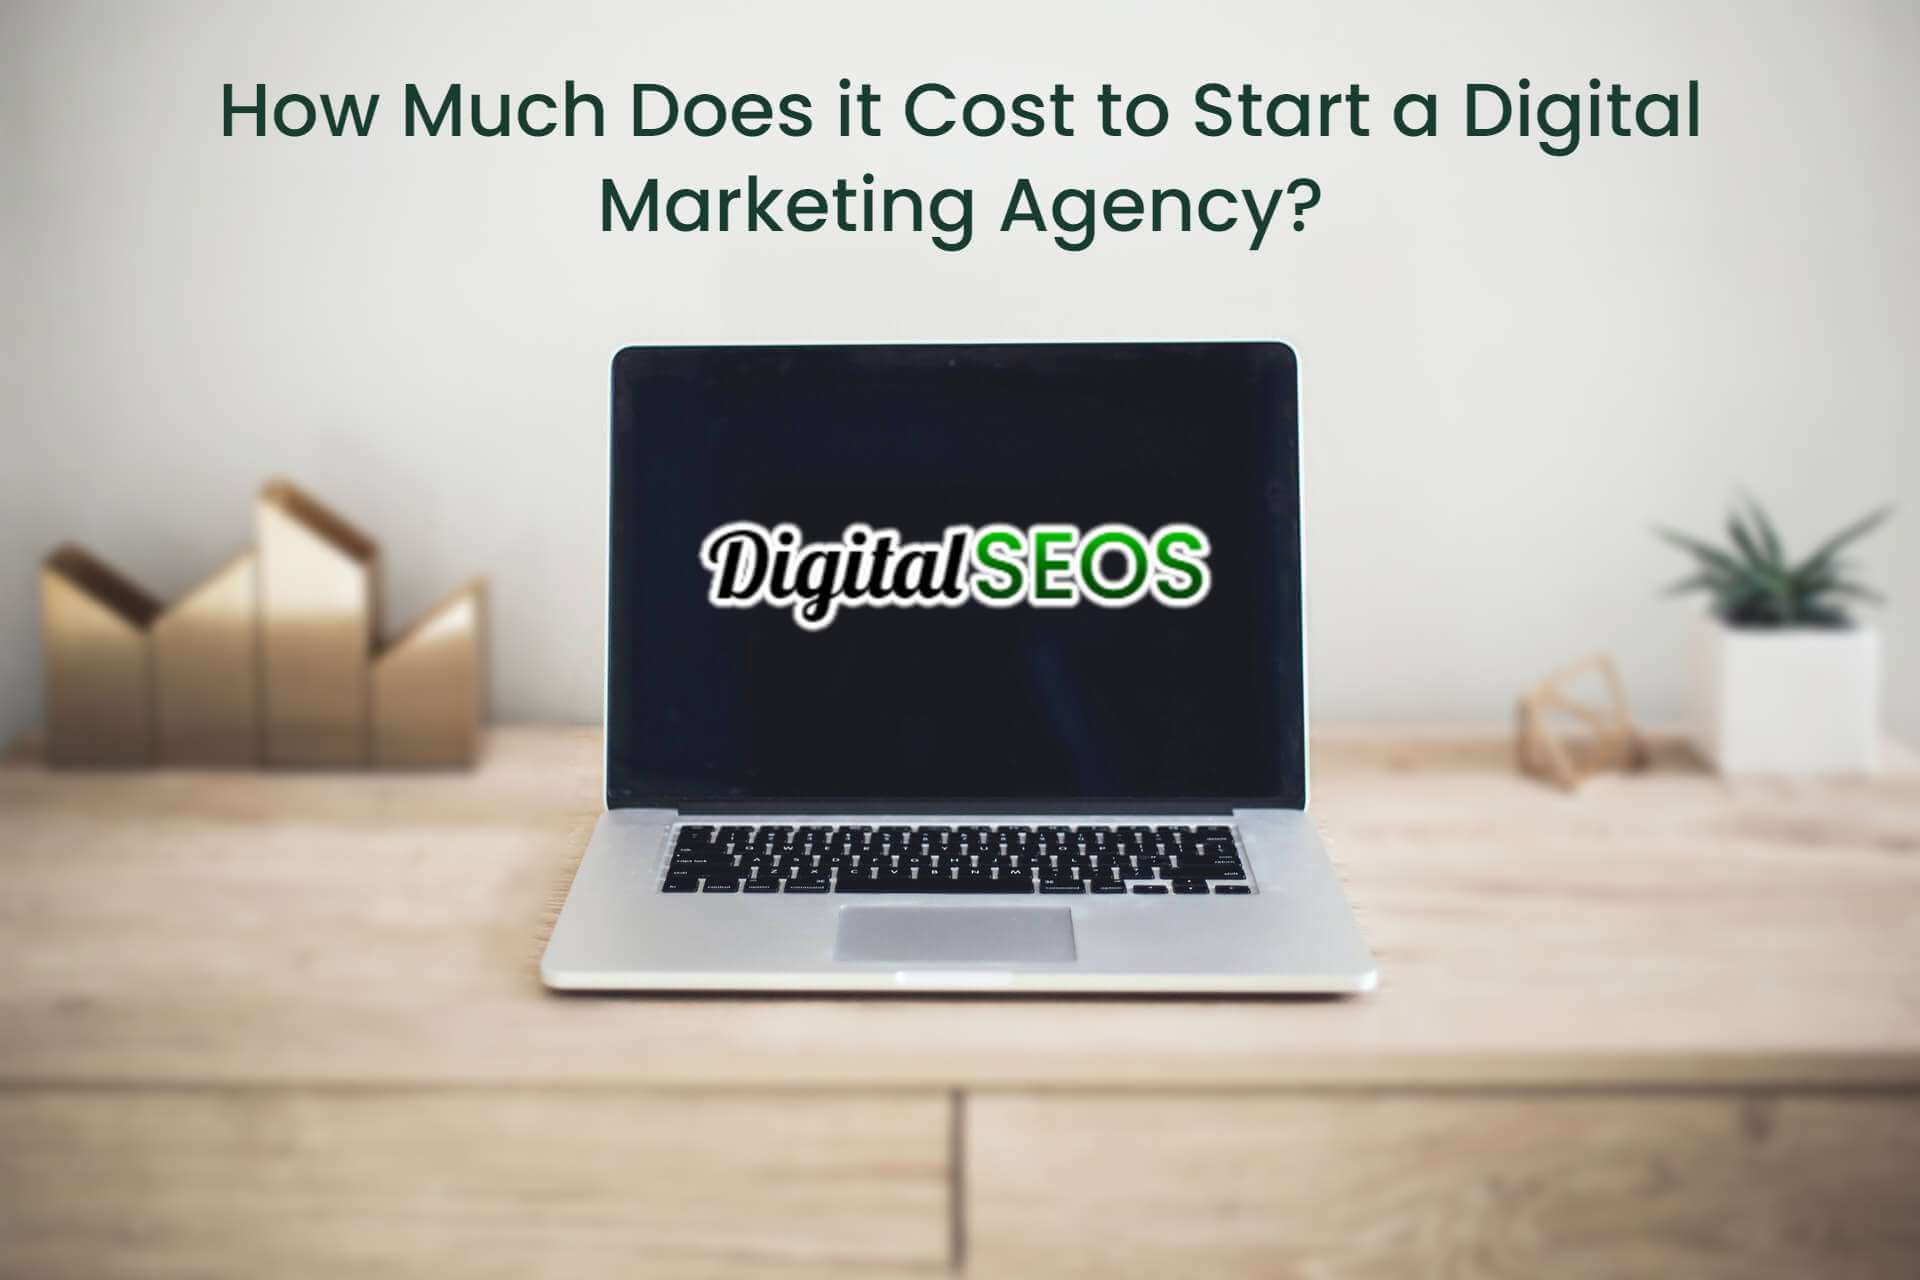 How Much Does it Cost to Start a Digital Marketing Agency?